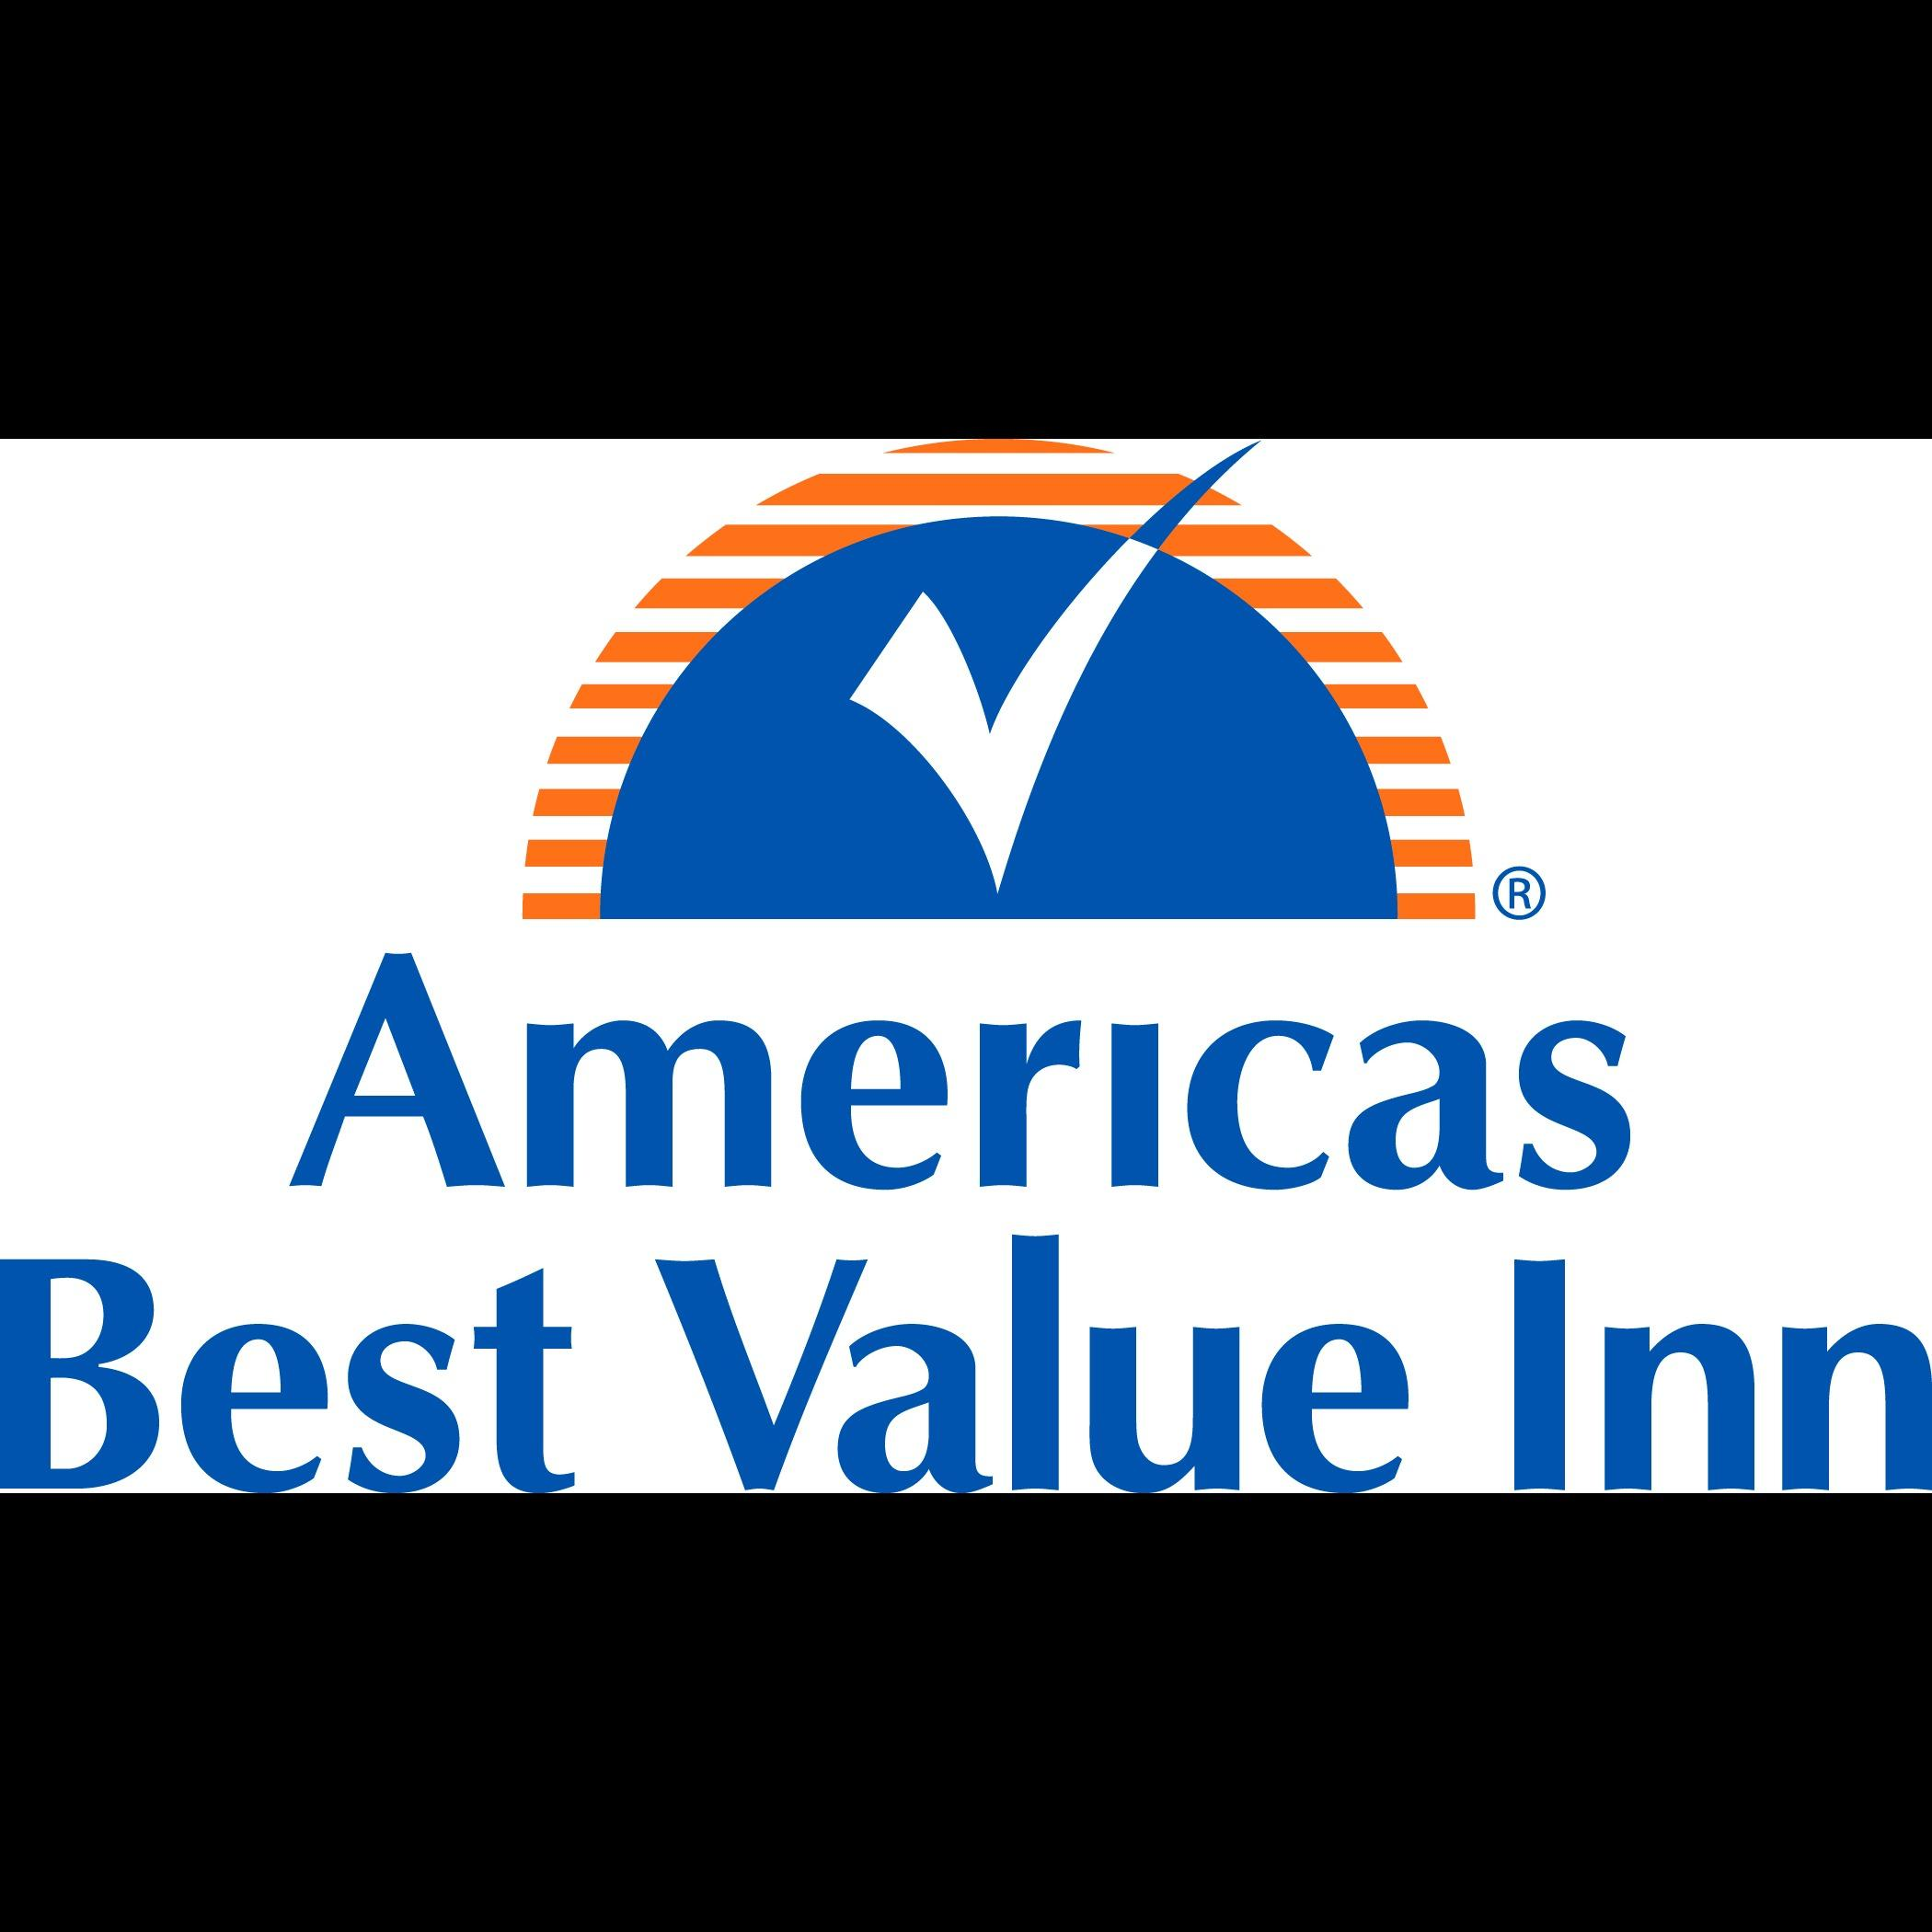 Americas Best Value Inn & Suites - El Monte/Los Angeles - El Monte, CA - Hotels & Motels